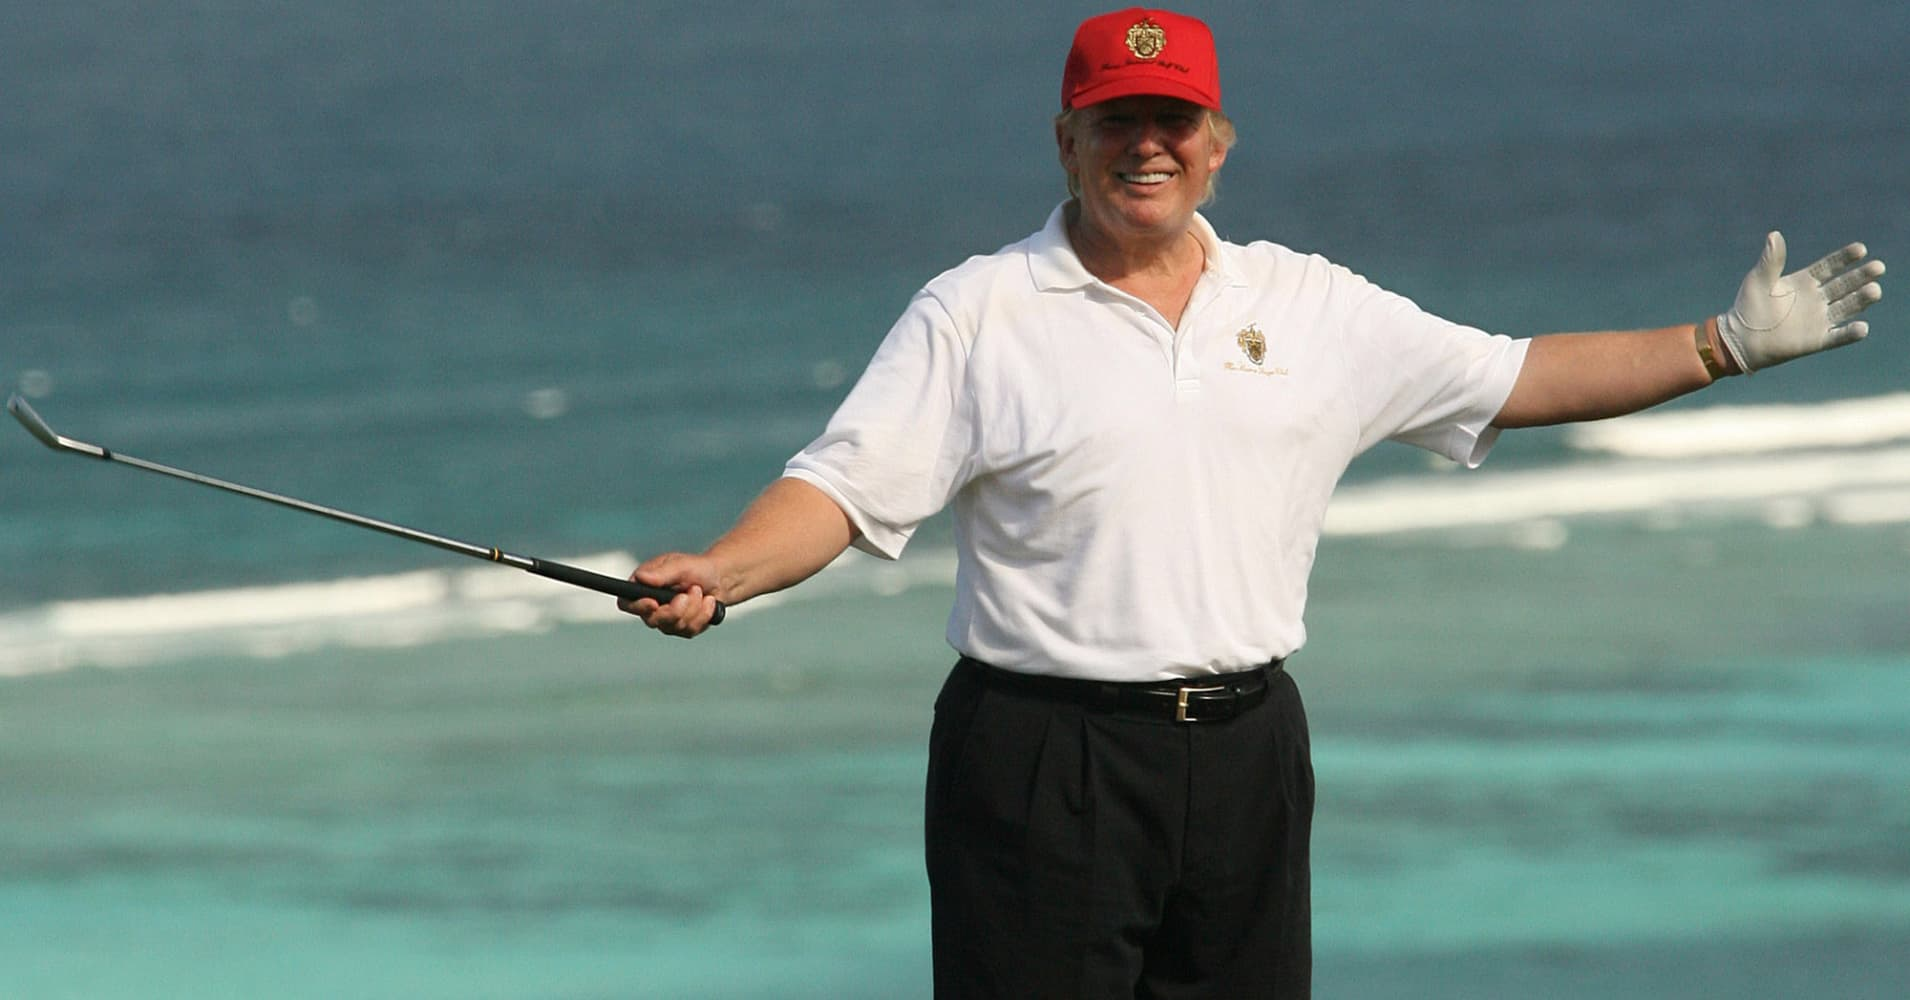 Price of Trump's Caribbean estate slashed by $11 million